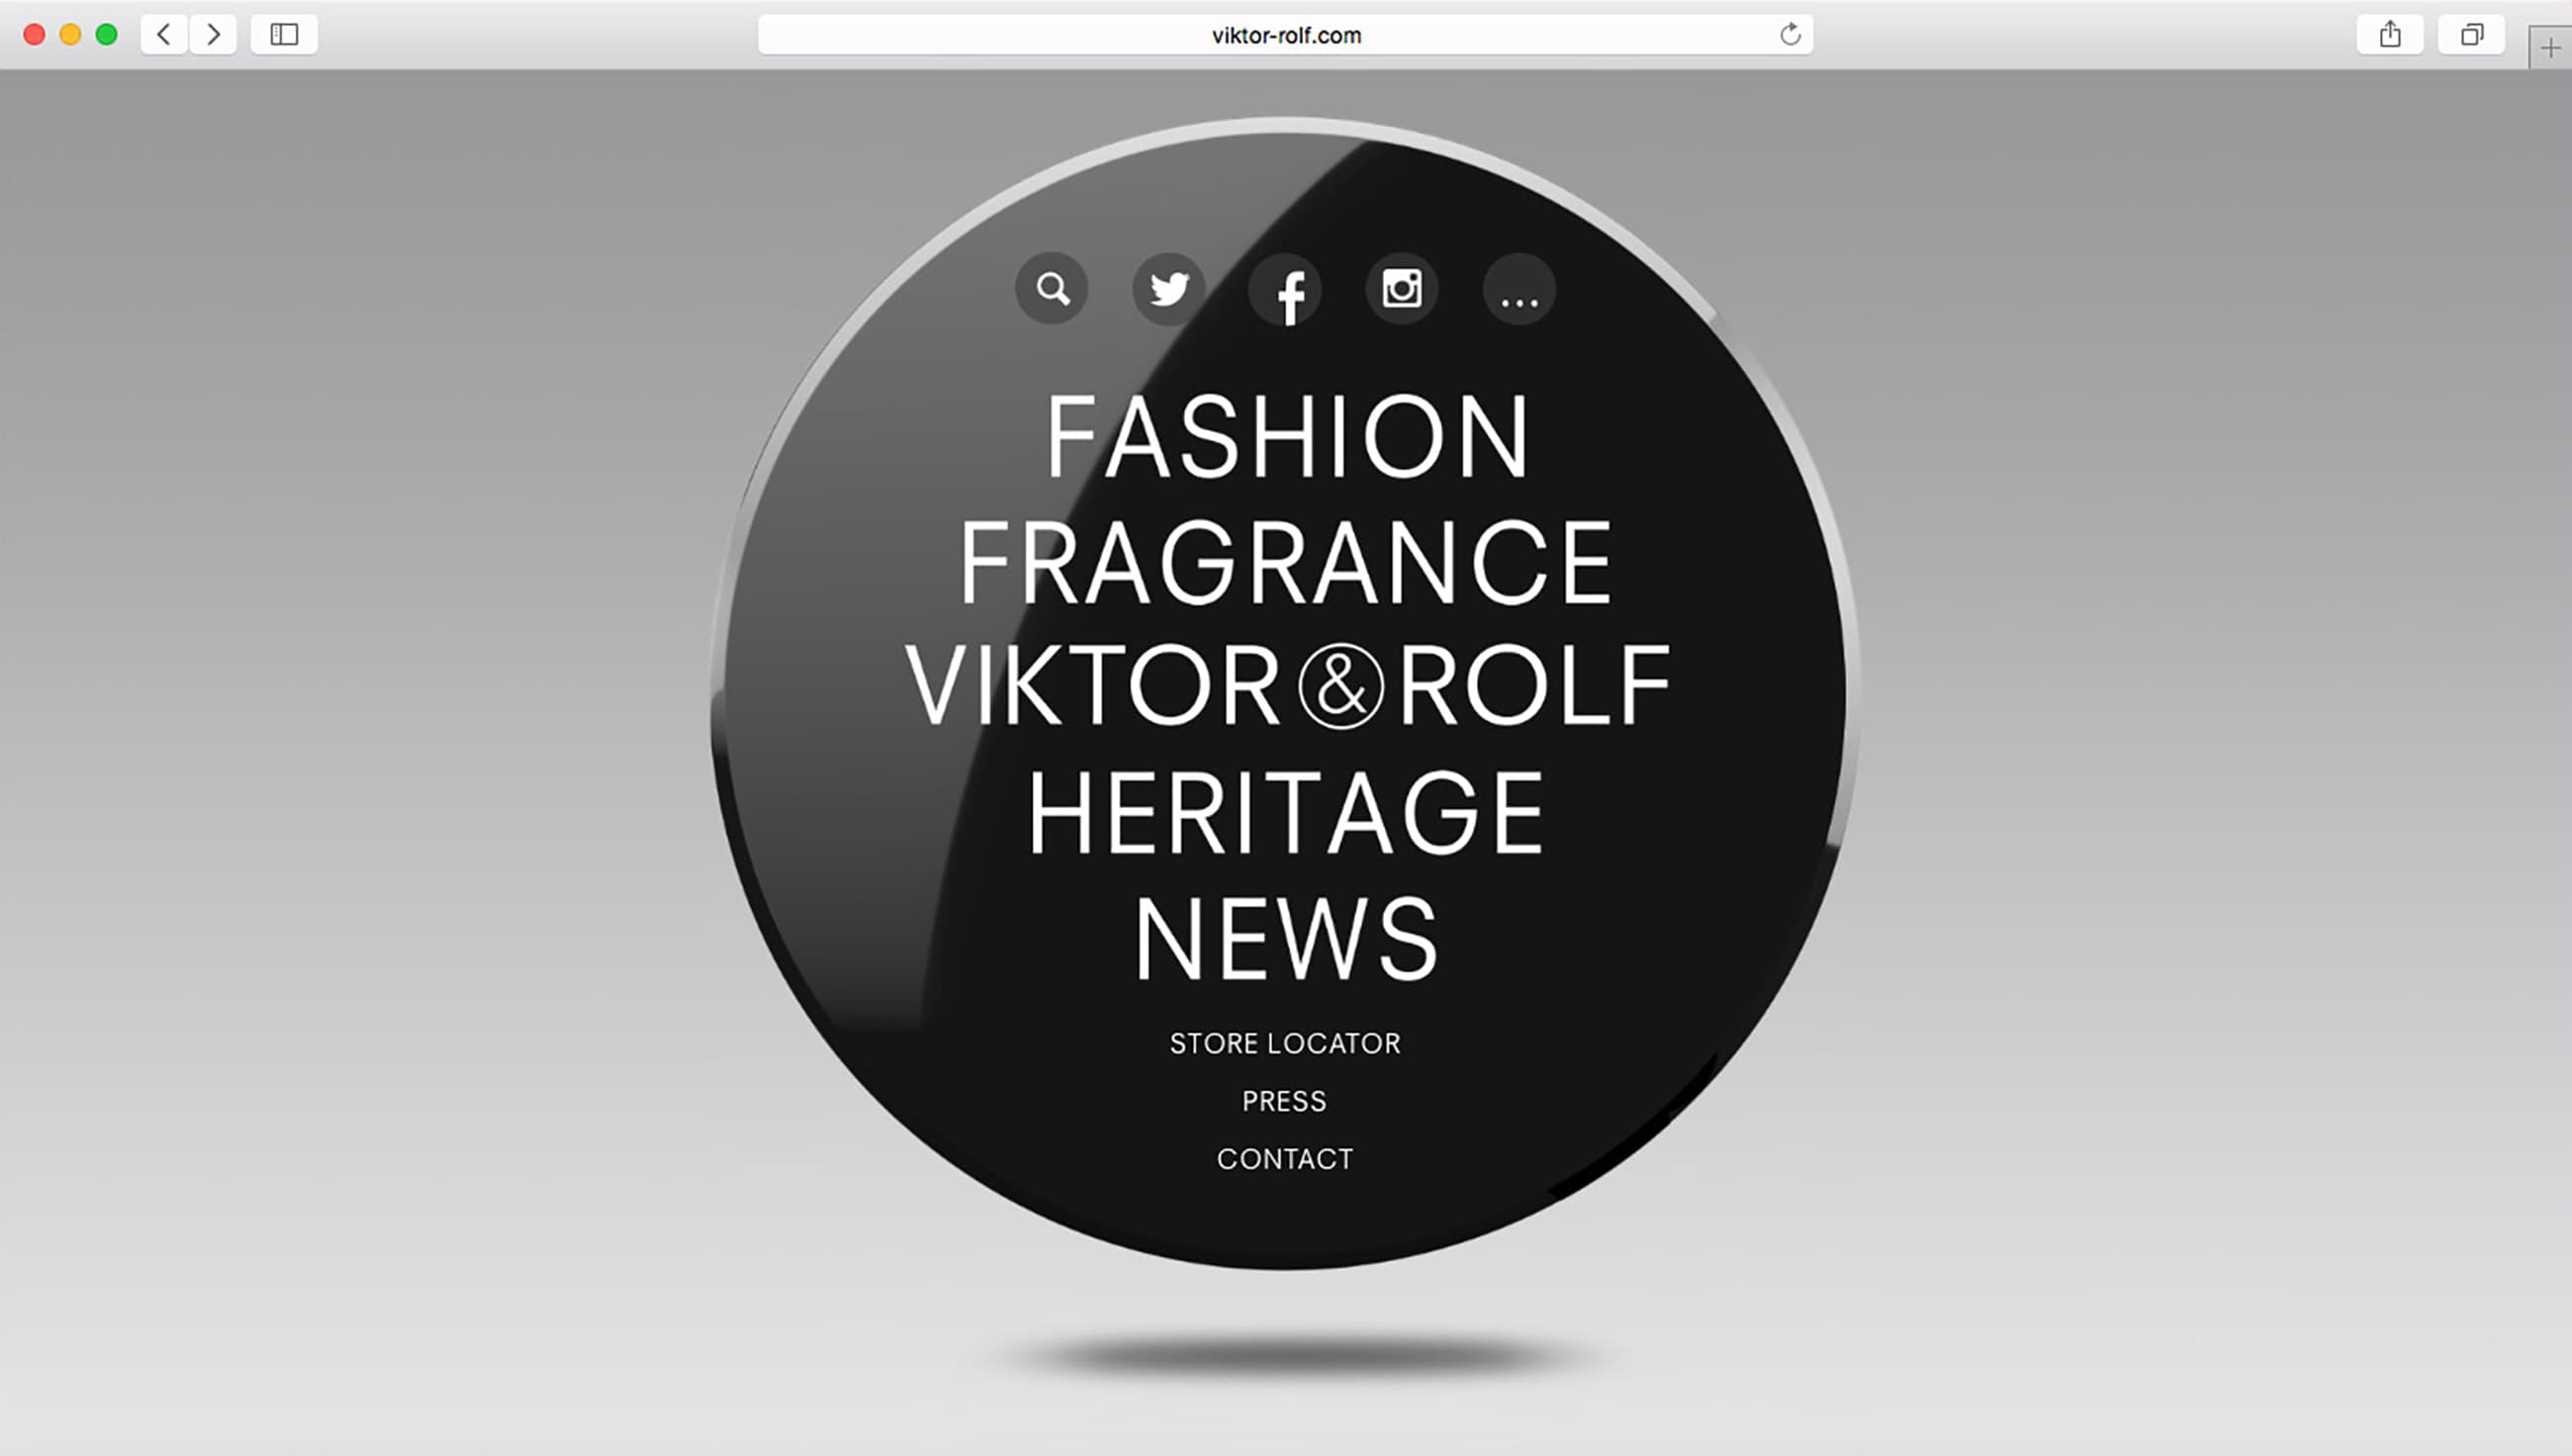 Studio Sander Plug – Viktor & Rolf - The World Round Web